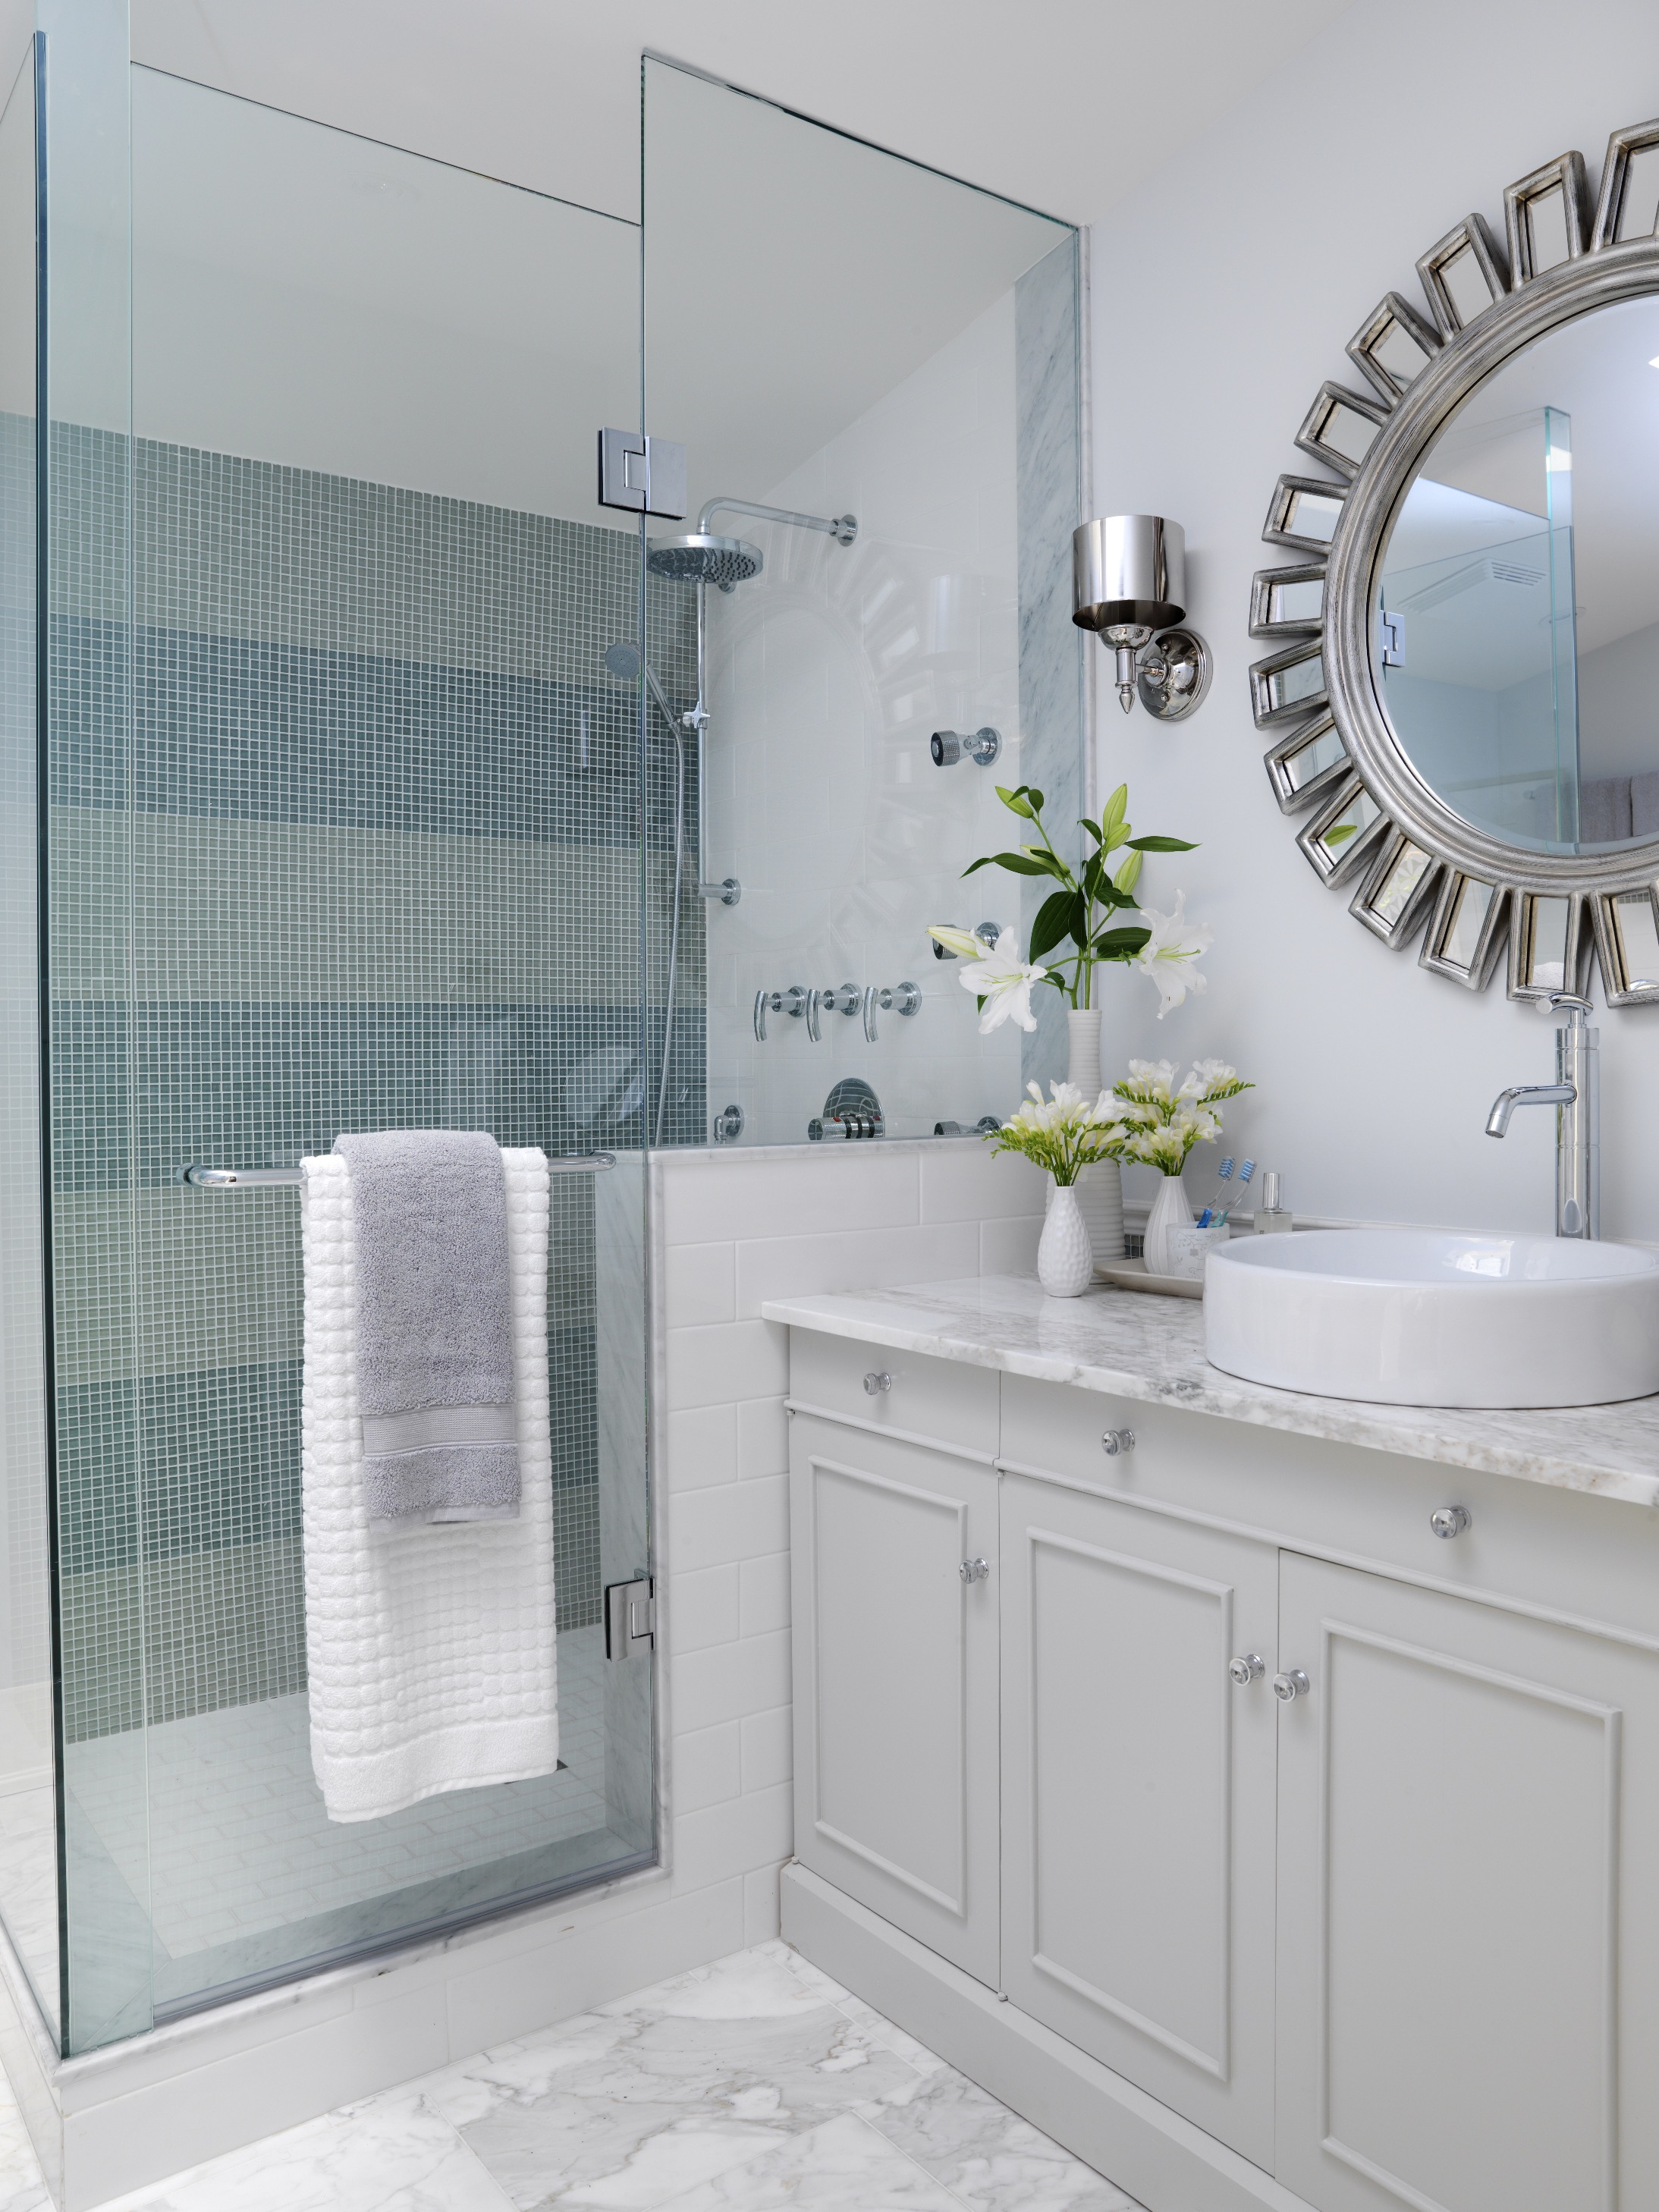 Elegant Small Bathroom With Dark Wood Cabinetry And Stark White Countertops (Image 6 of 14)